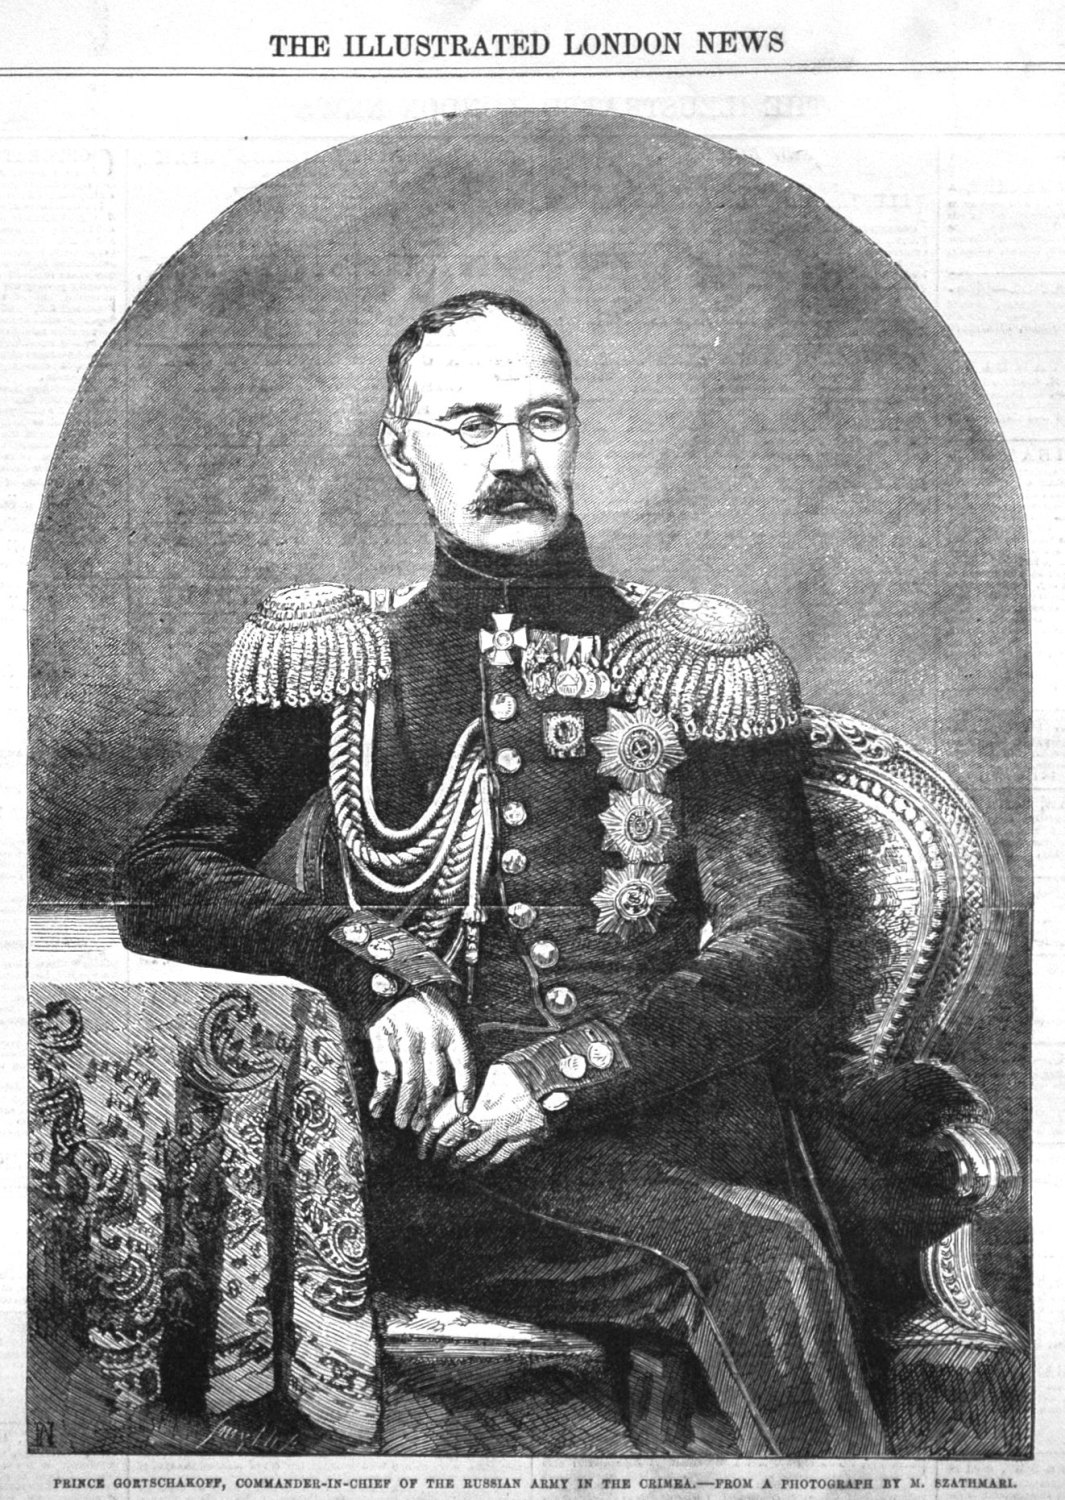 Prince Gortschakoff, Commander-in-Chief of the Russian Army in the Crimea.